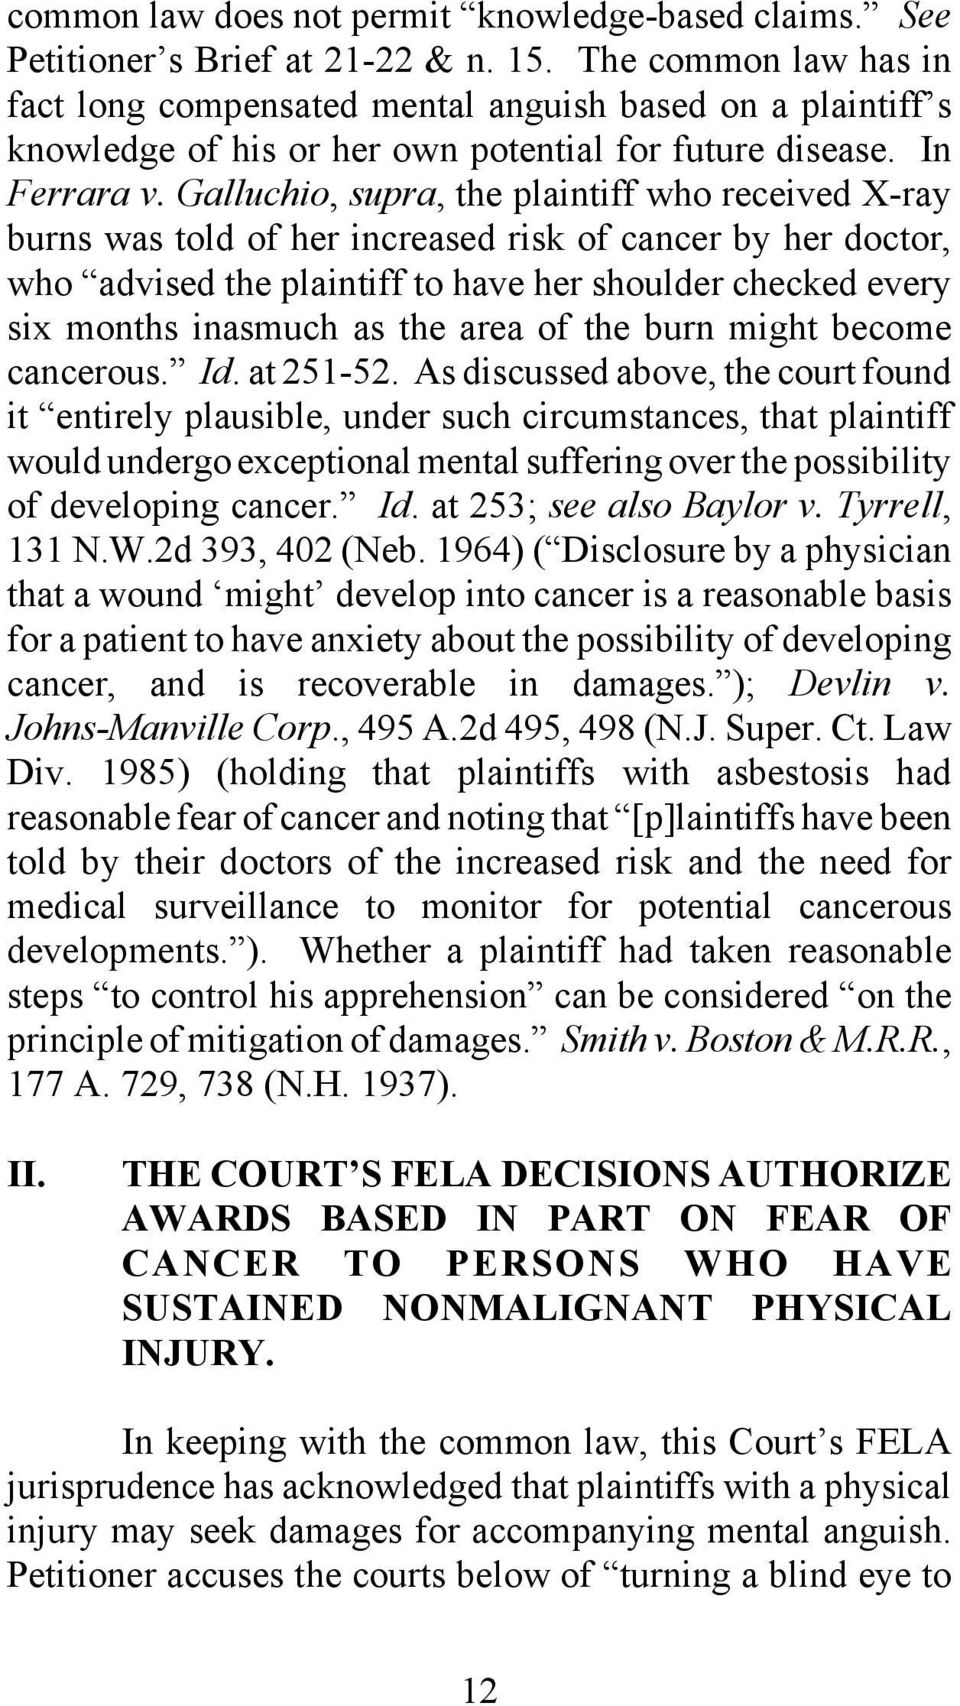 Galluchio, supra, the plaintiff who received X-ray burns was told of her increased risk of cancer by her doctor, who advised the plaintiff to have her shoulder checked every six months inasmuch as